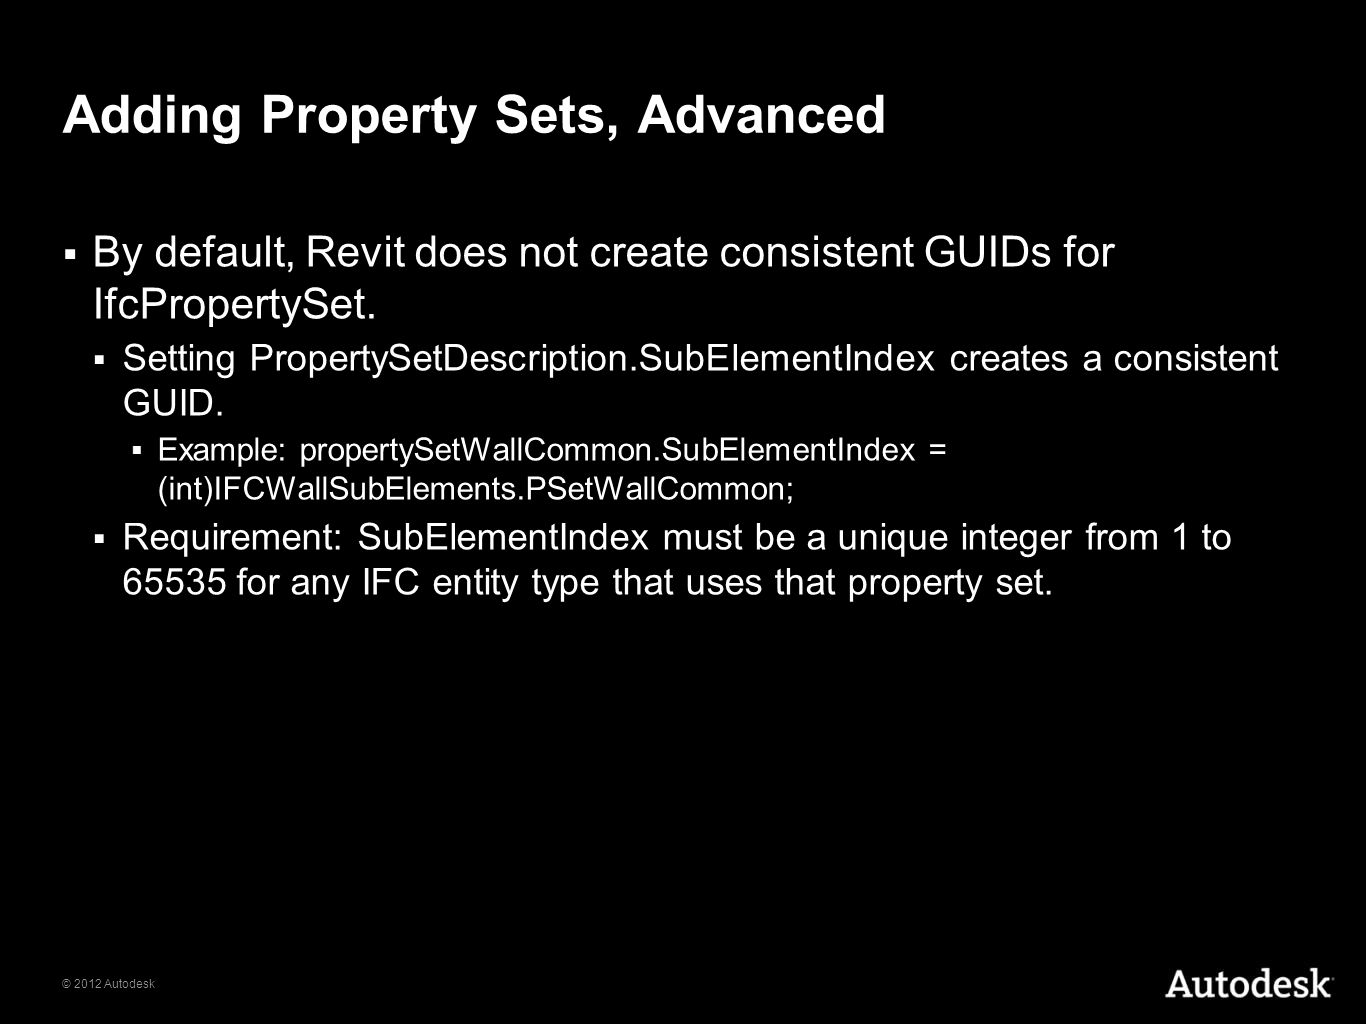 © 2012 Autodesk Adding Property Sets, Advanced By default, Revit does not create consistent GUIDs for IfcPropertySet.